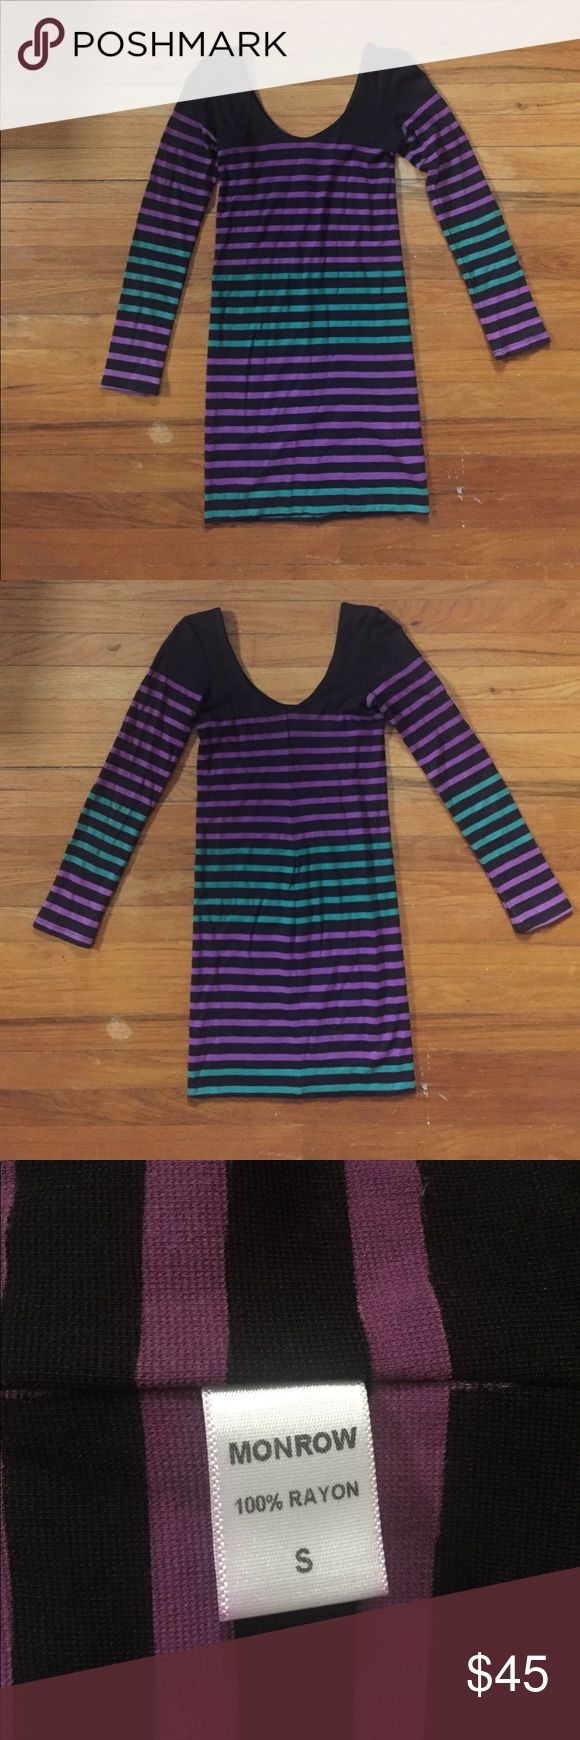 Monrow Striped Scoopneck Dress | Size S Slimming/tight long sleeve dress from Monrow. Thick/heavy material (100% Rayon). Good condition. Slight discoloration near underarms, barely noticeable unless you're looking for it. Great for going out, figure flattering. No rips. Monrow Dresses Mini